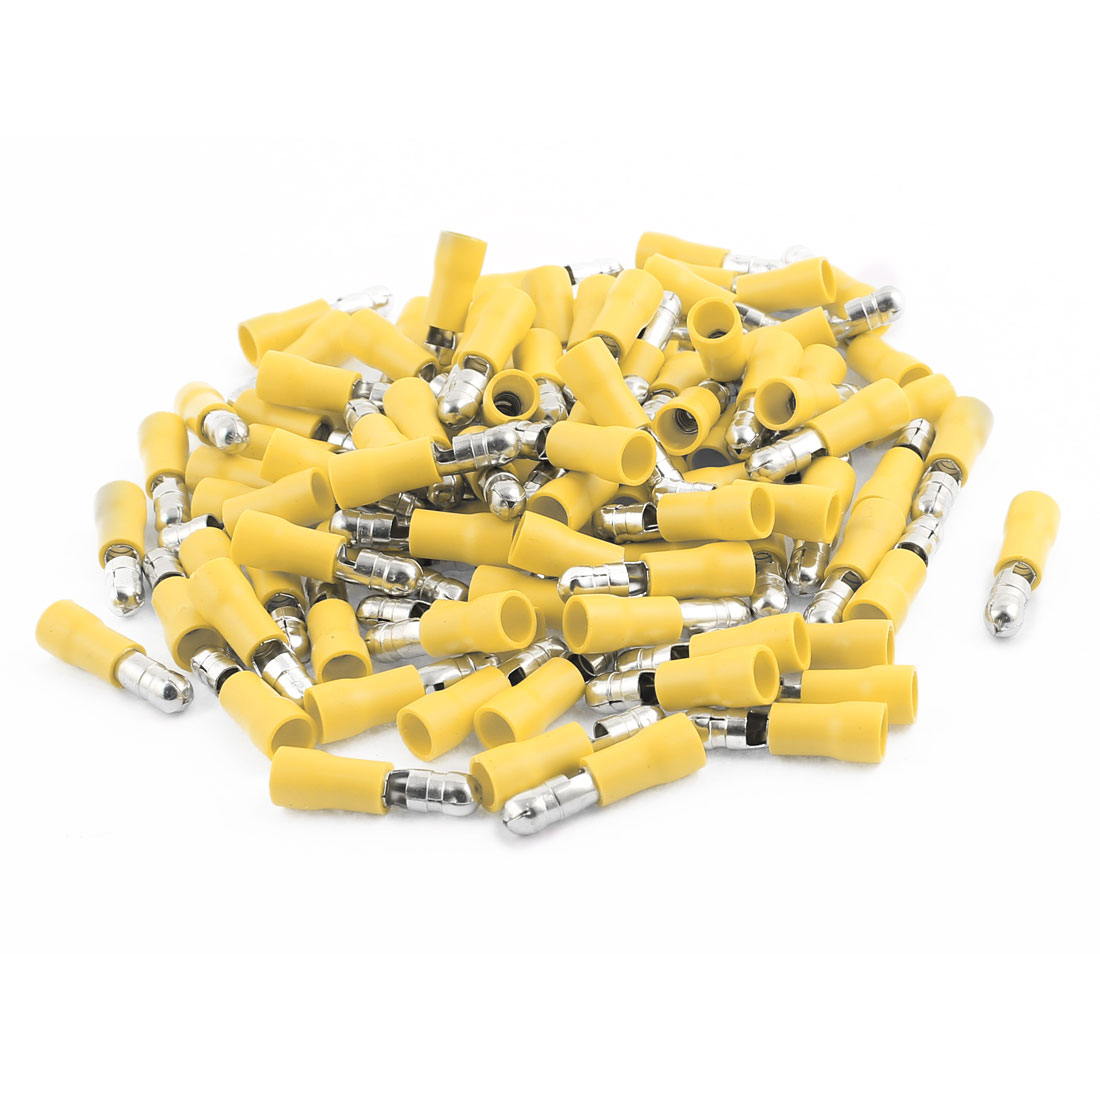 100Pcs MPD5.5-195 4-6 AWG Wire Insulated Male Terminal Connector